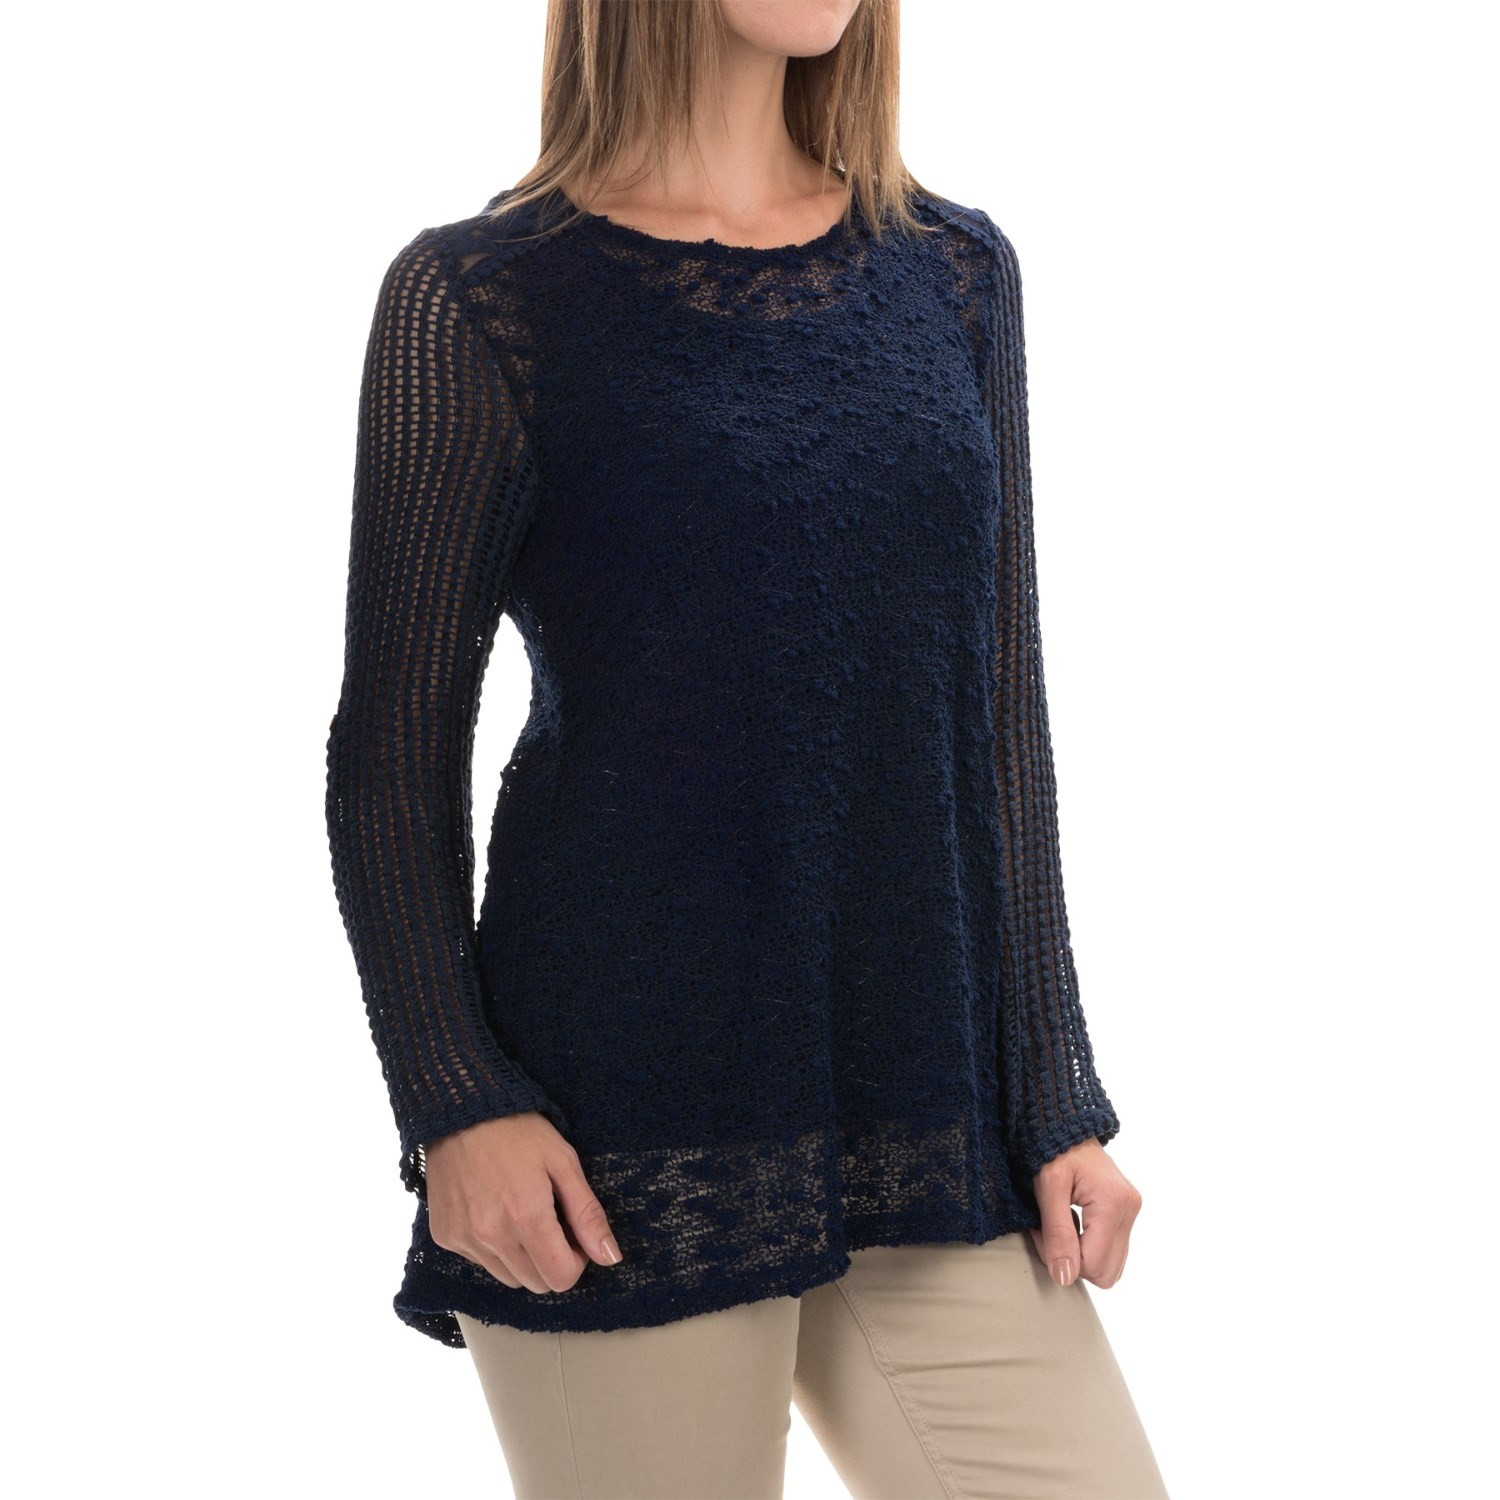 New Crochet Knit Shirt for Women Save Crochet Shirts Of Brilliant 43 Ideas Crochet Shirts